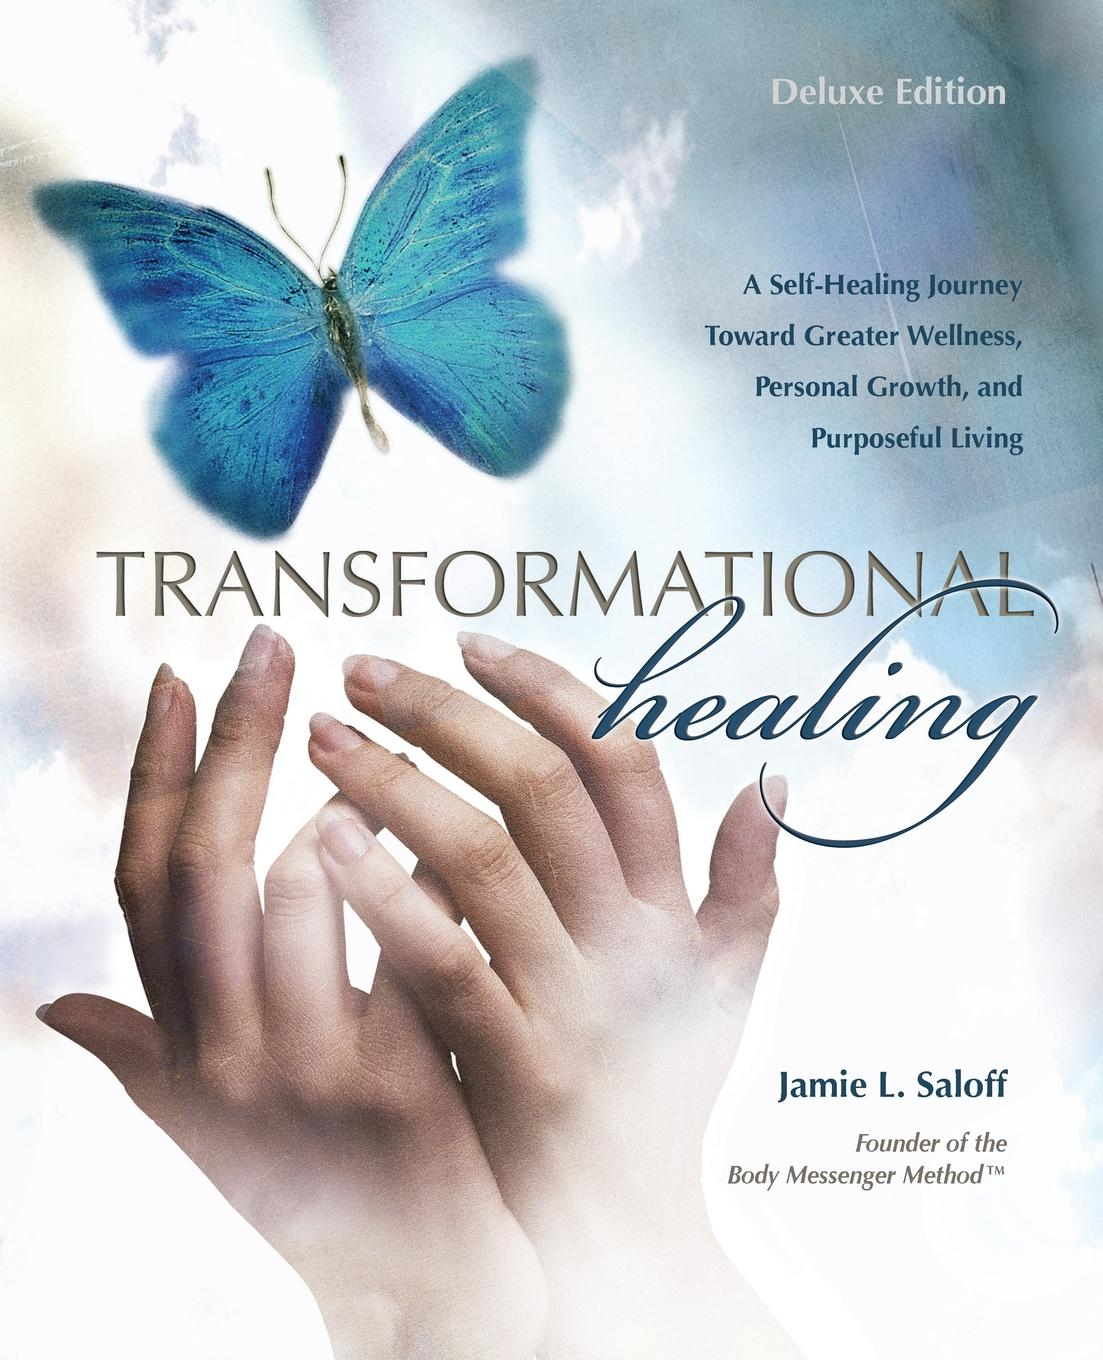 Jamie L. Saloff Transformational Healing (Deluxe Edition). A Self-Healing Journey Toward Greater Wellness, Personal Growth, and Purposeful Living jason vitug you only live once the roadmap to financial wellness and a purposeful life